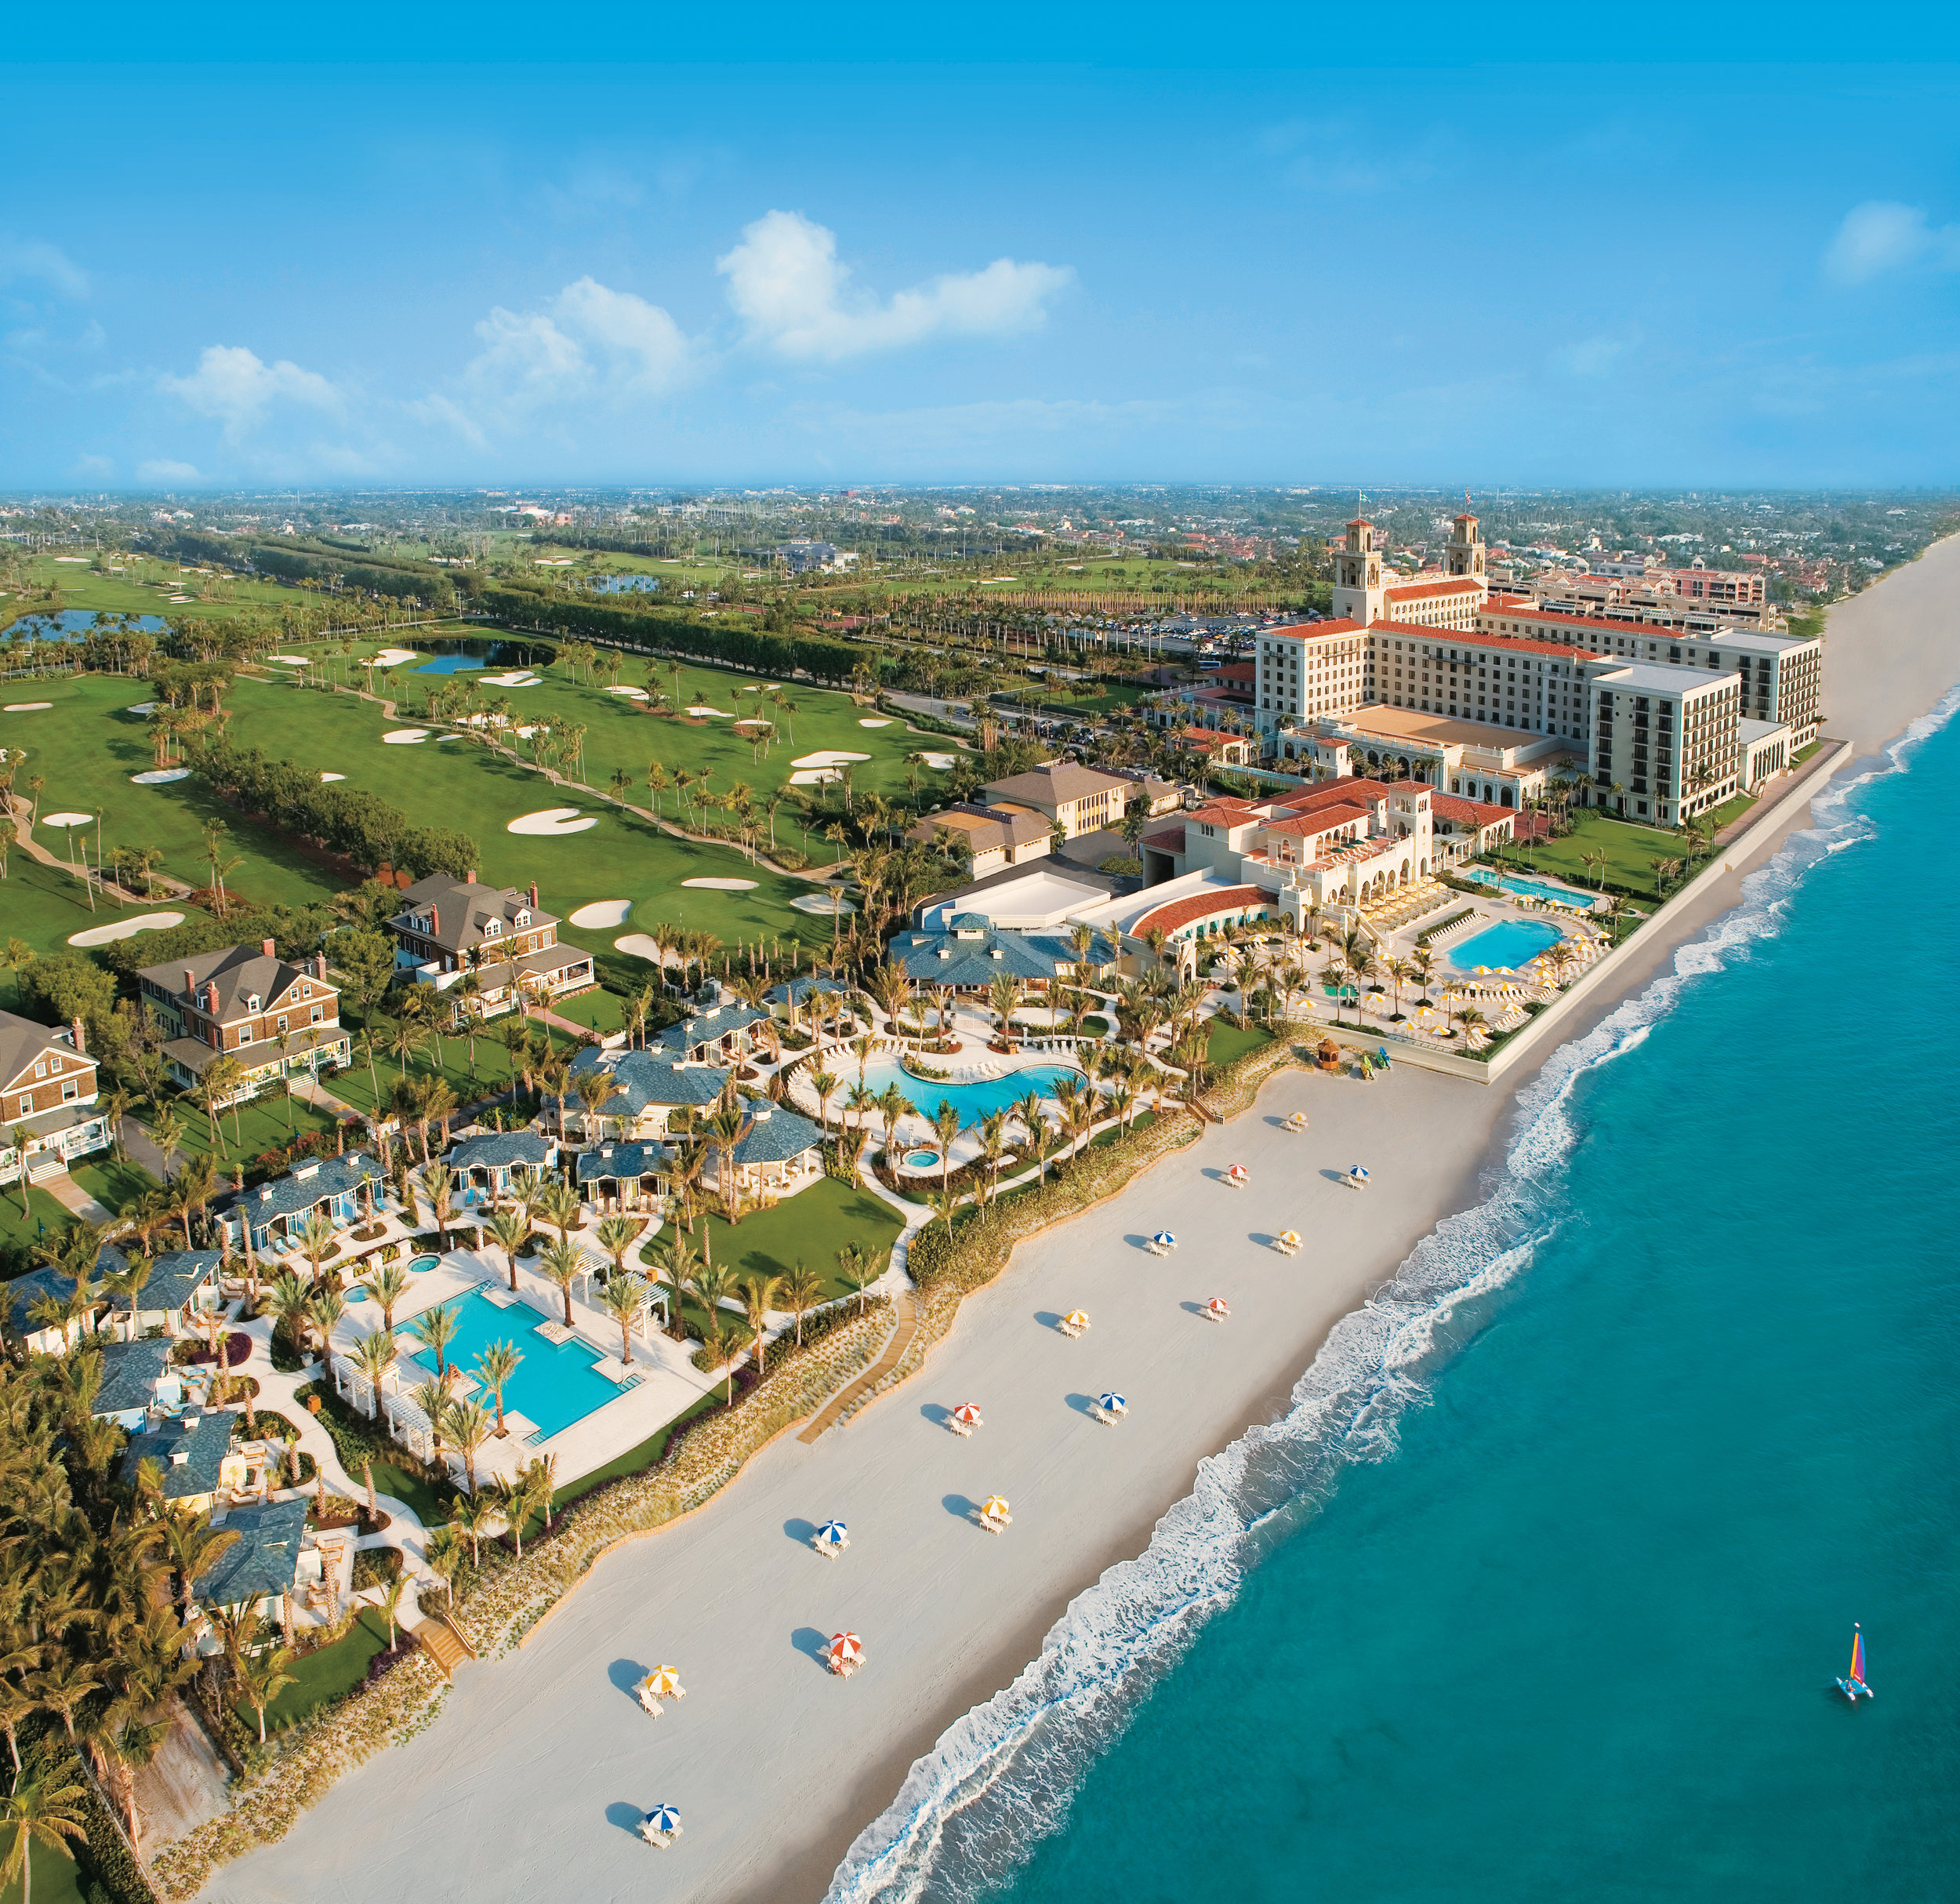 Aerial view of The Breakers' 140 acres of oceanfront property in the heart of Palm Beach